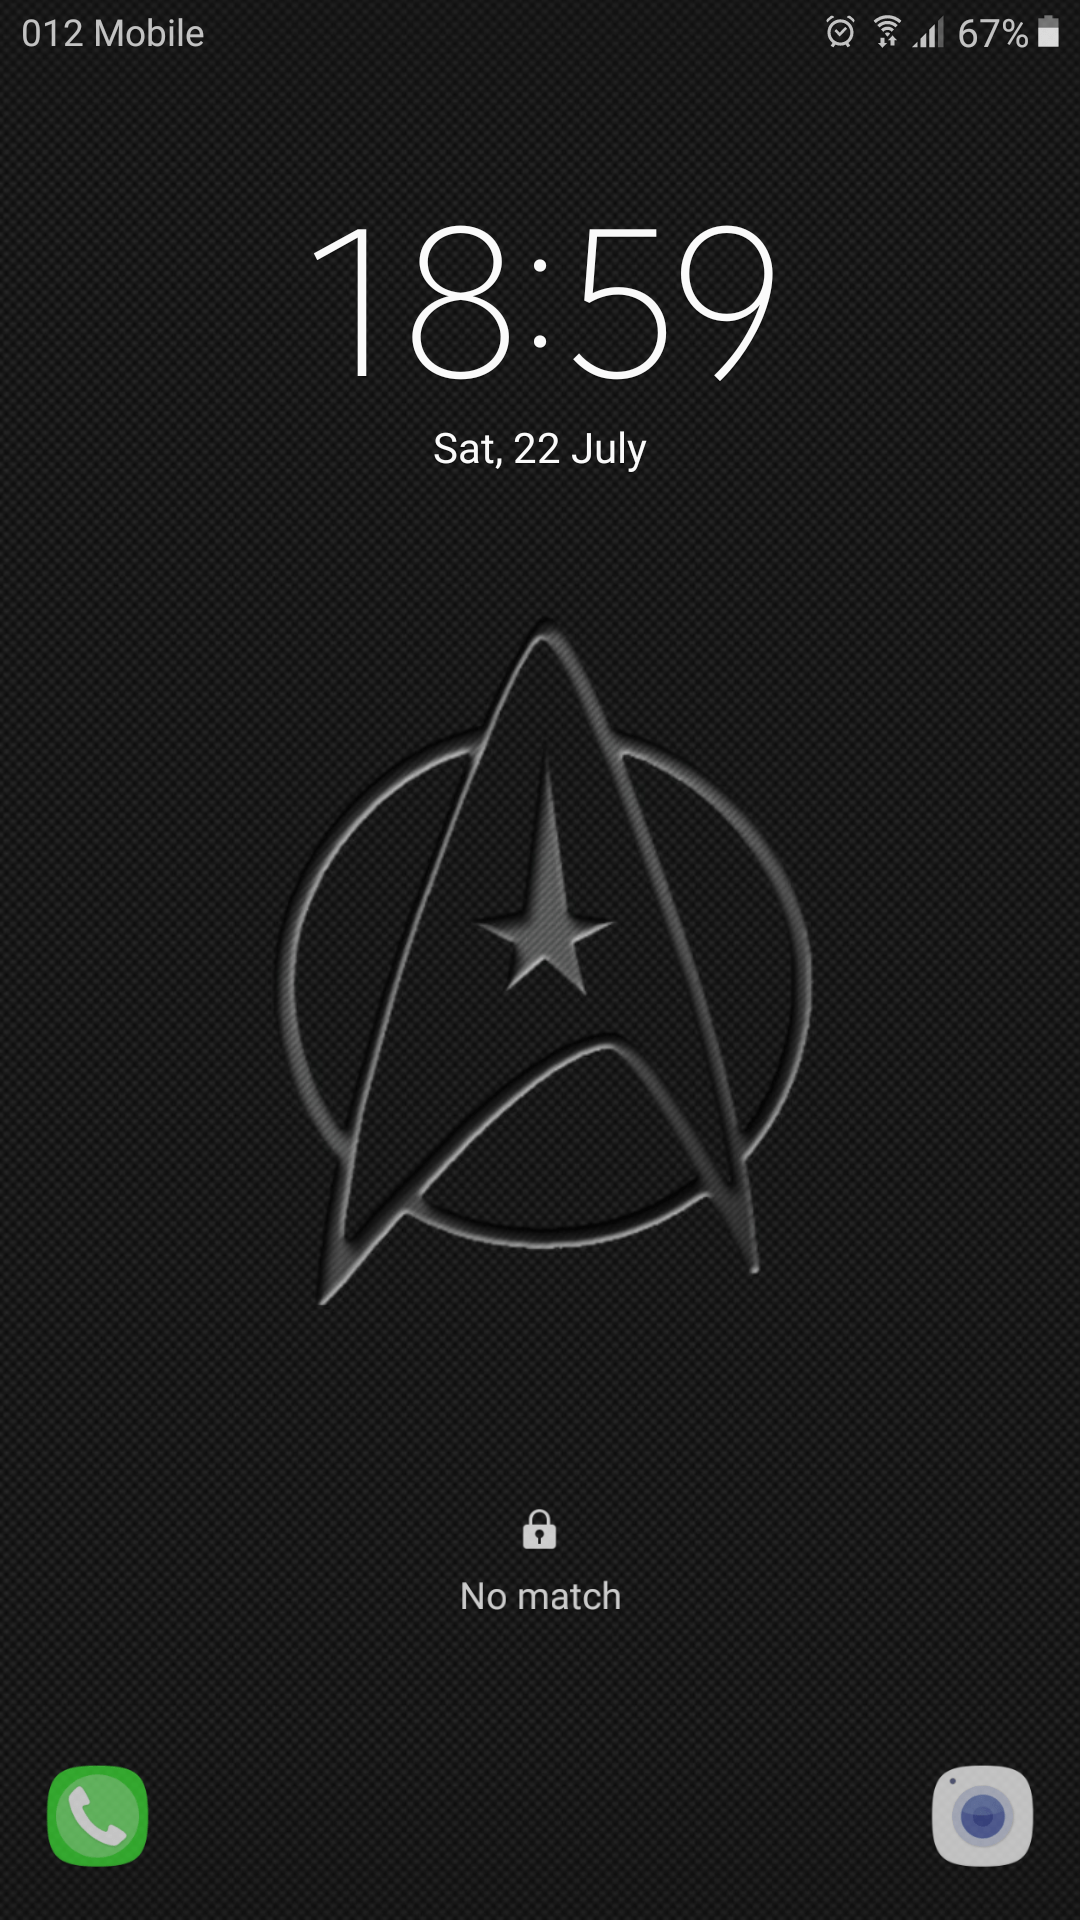 Love This Star Trek Wallpaper For My Phone Paul Jacobson